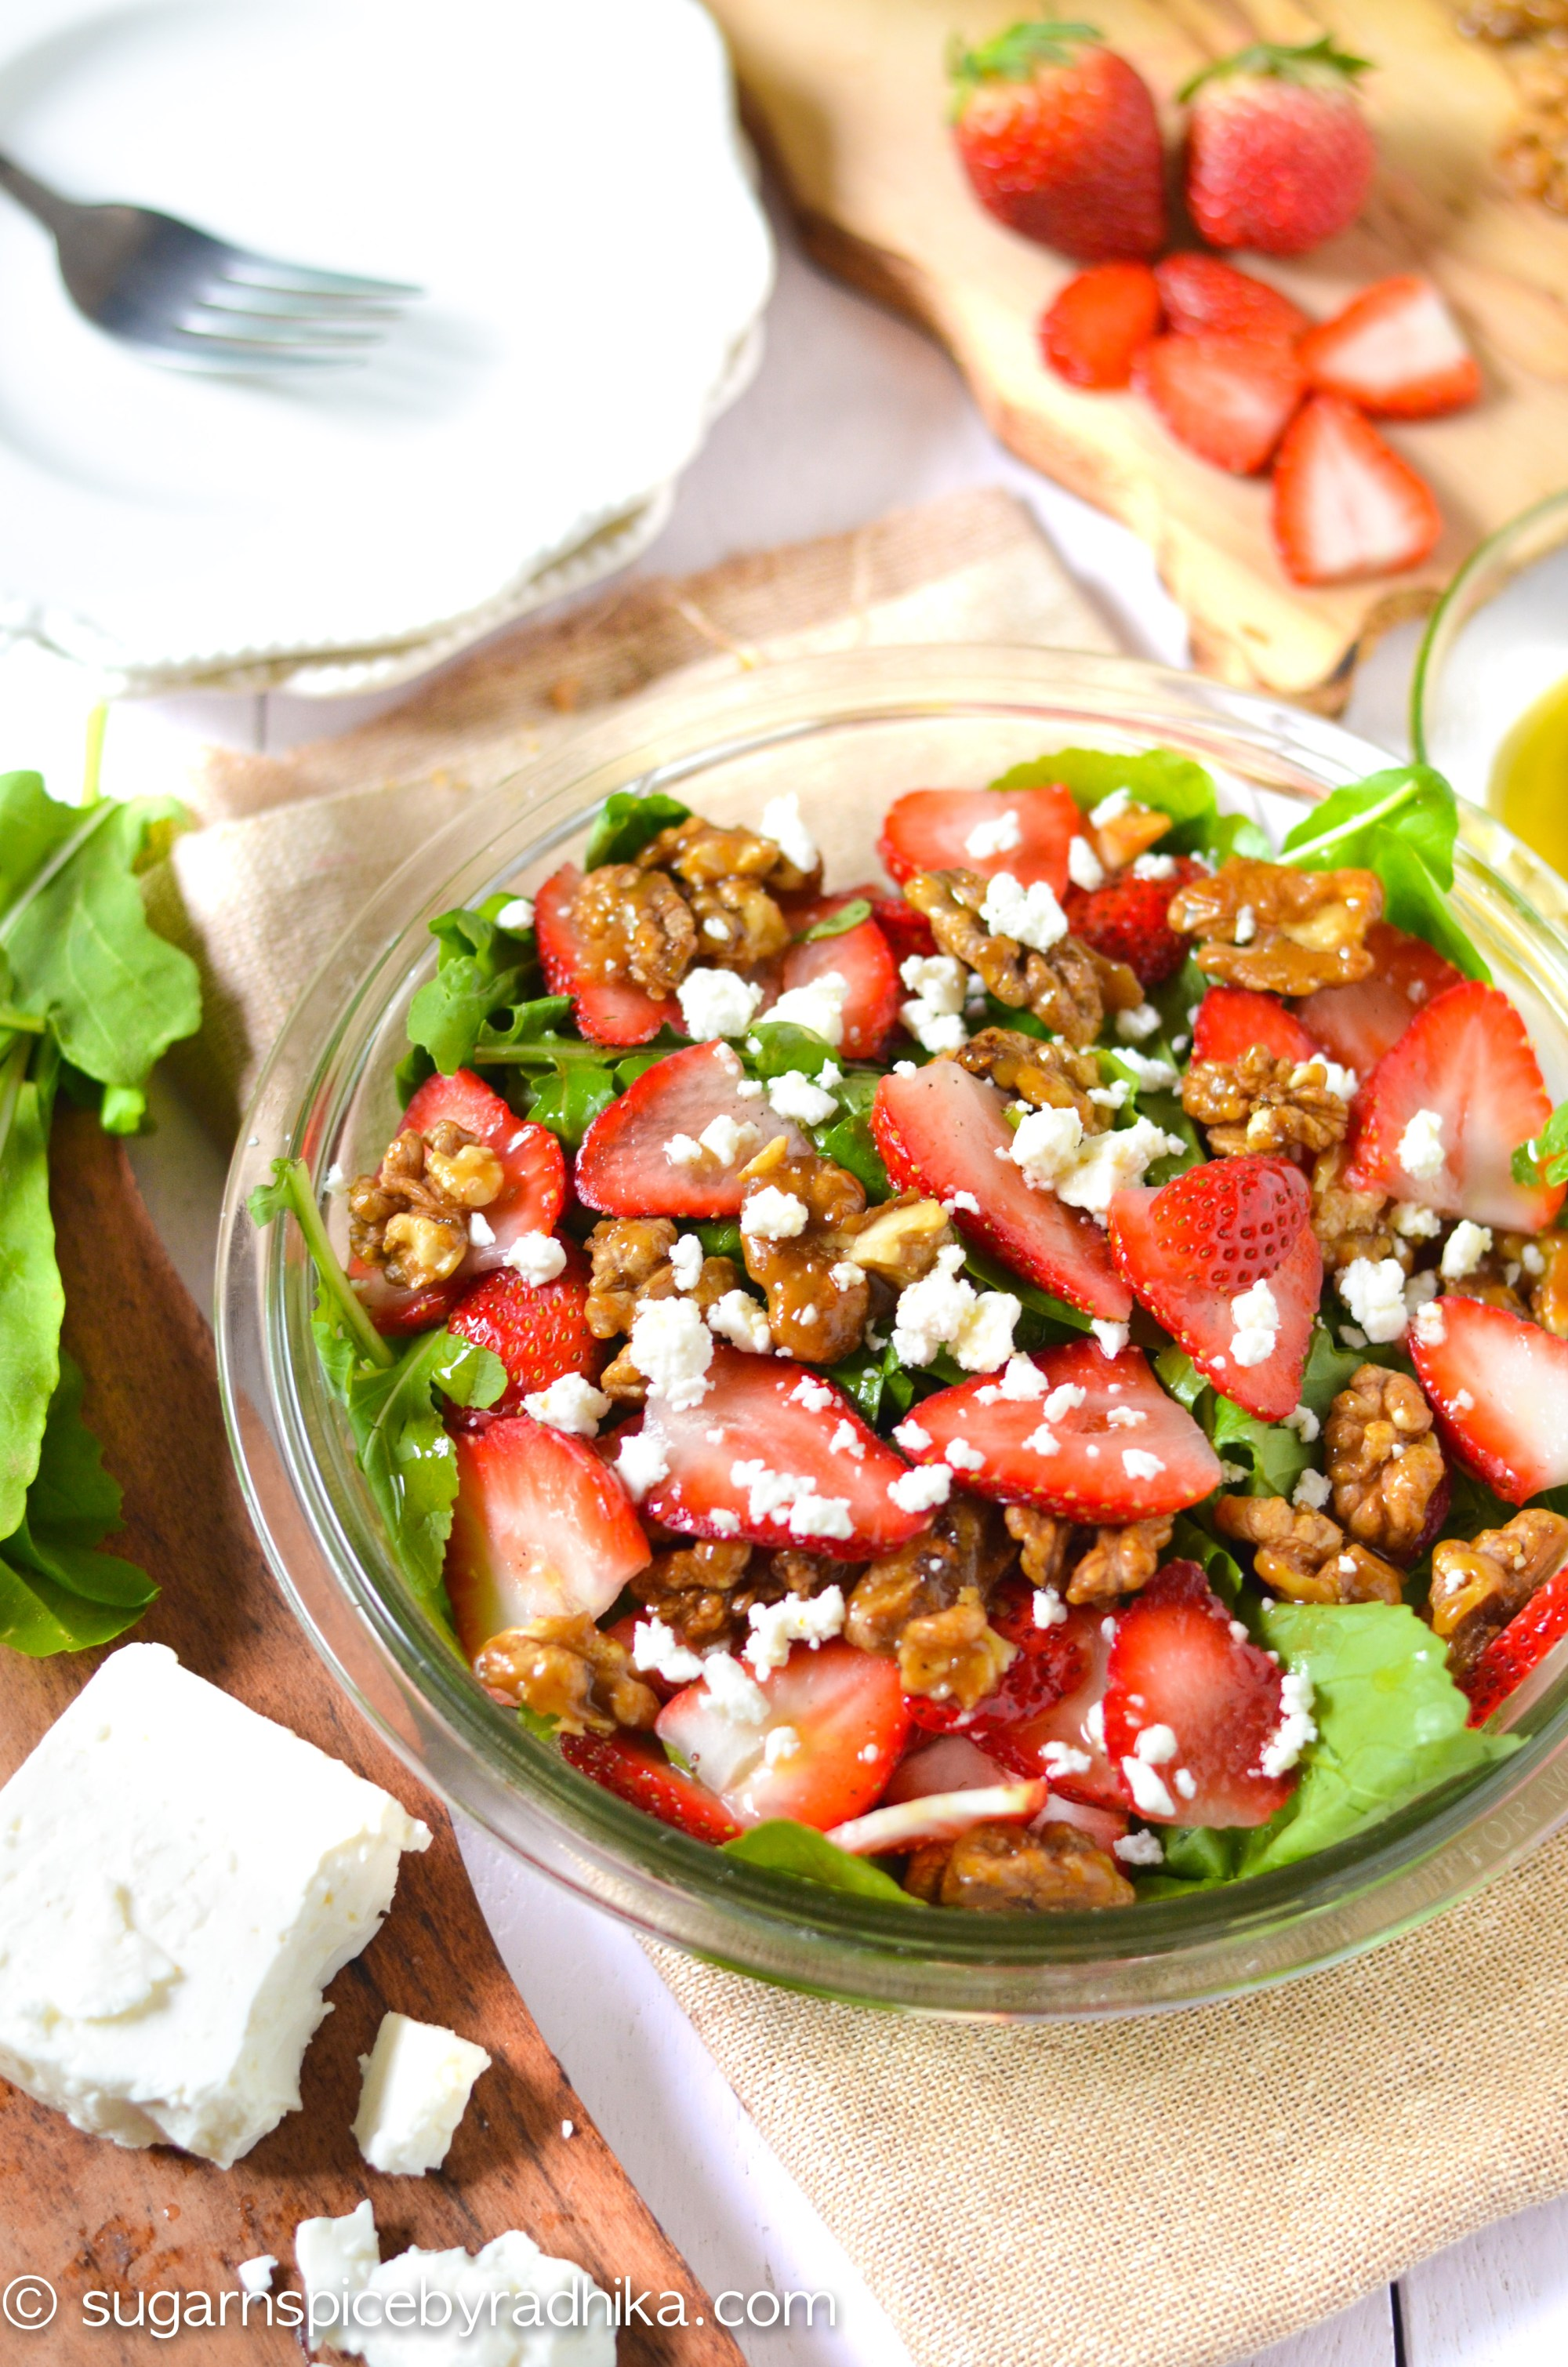 Strawberry Salad with Candied Walnuts and Feta